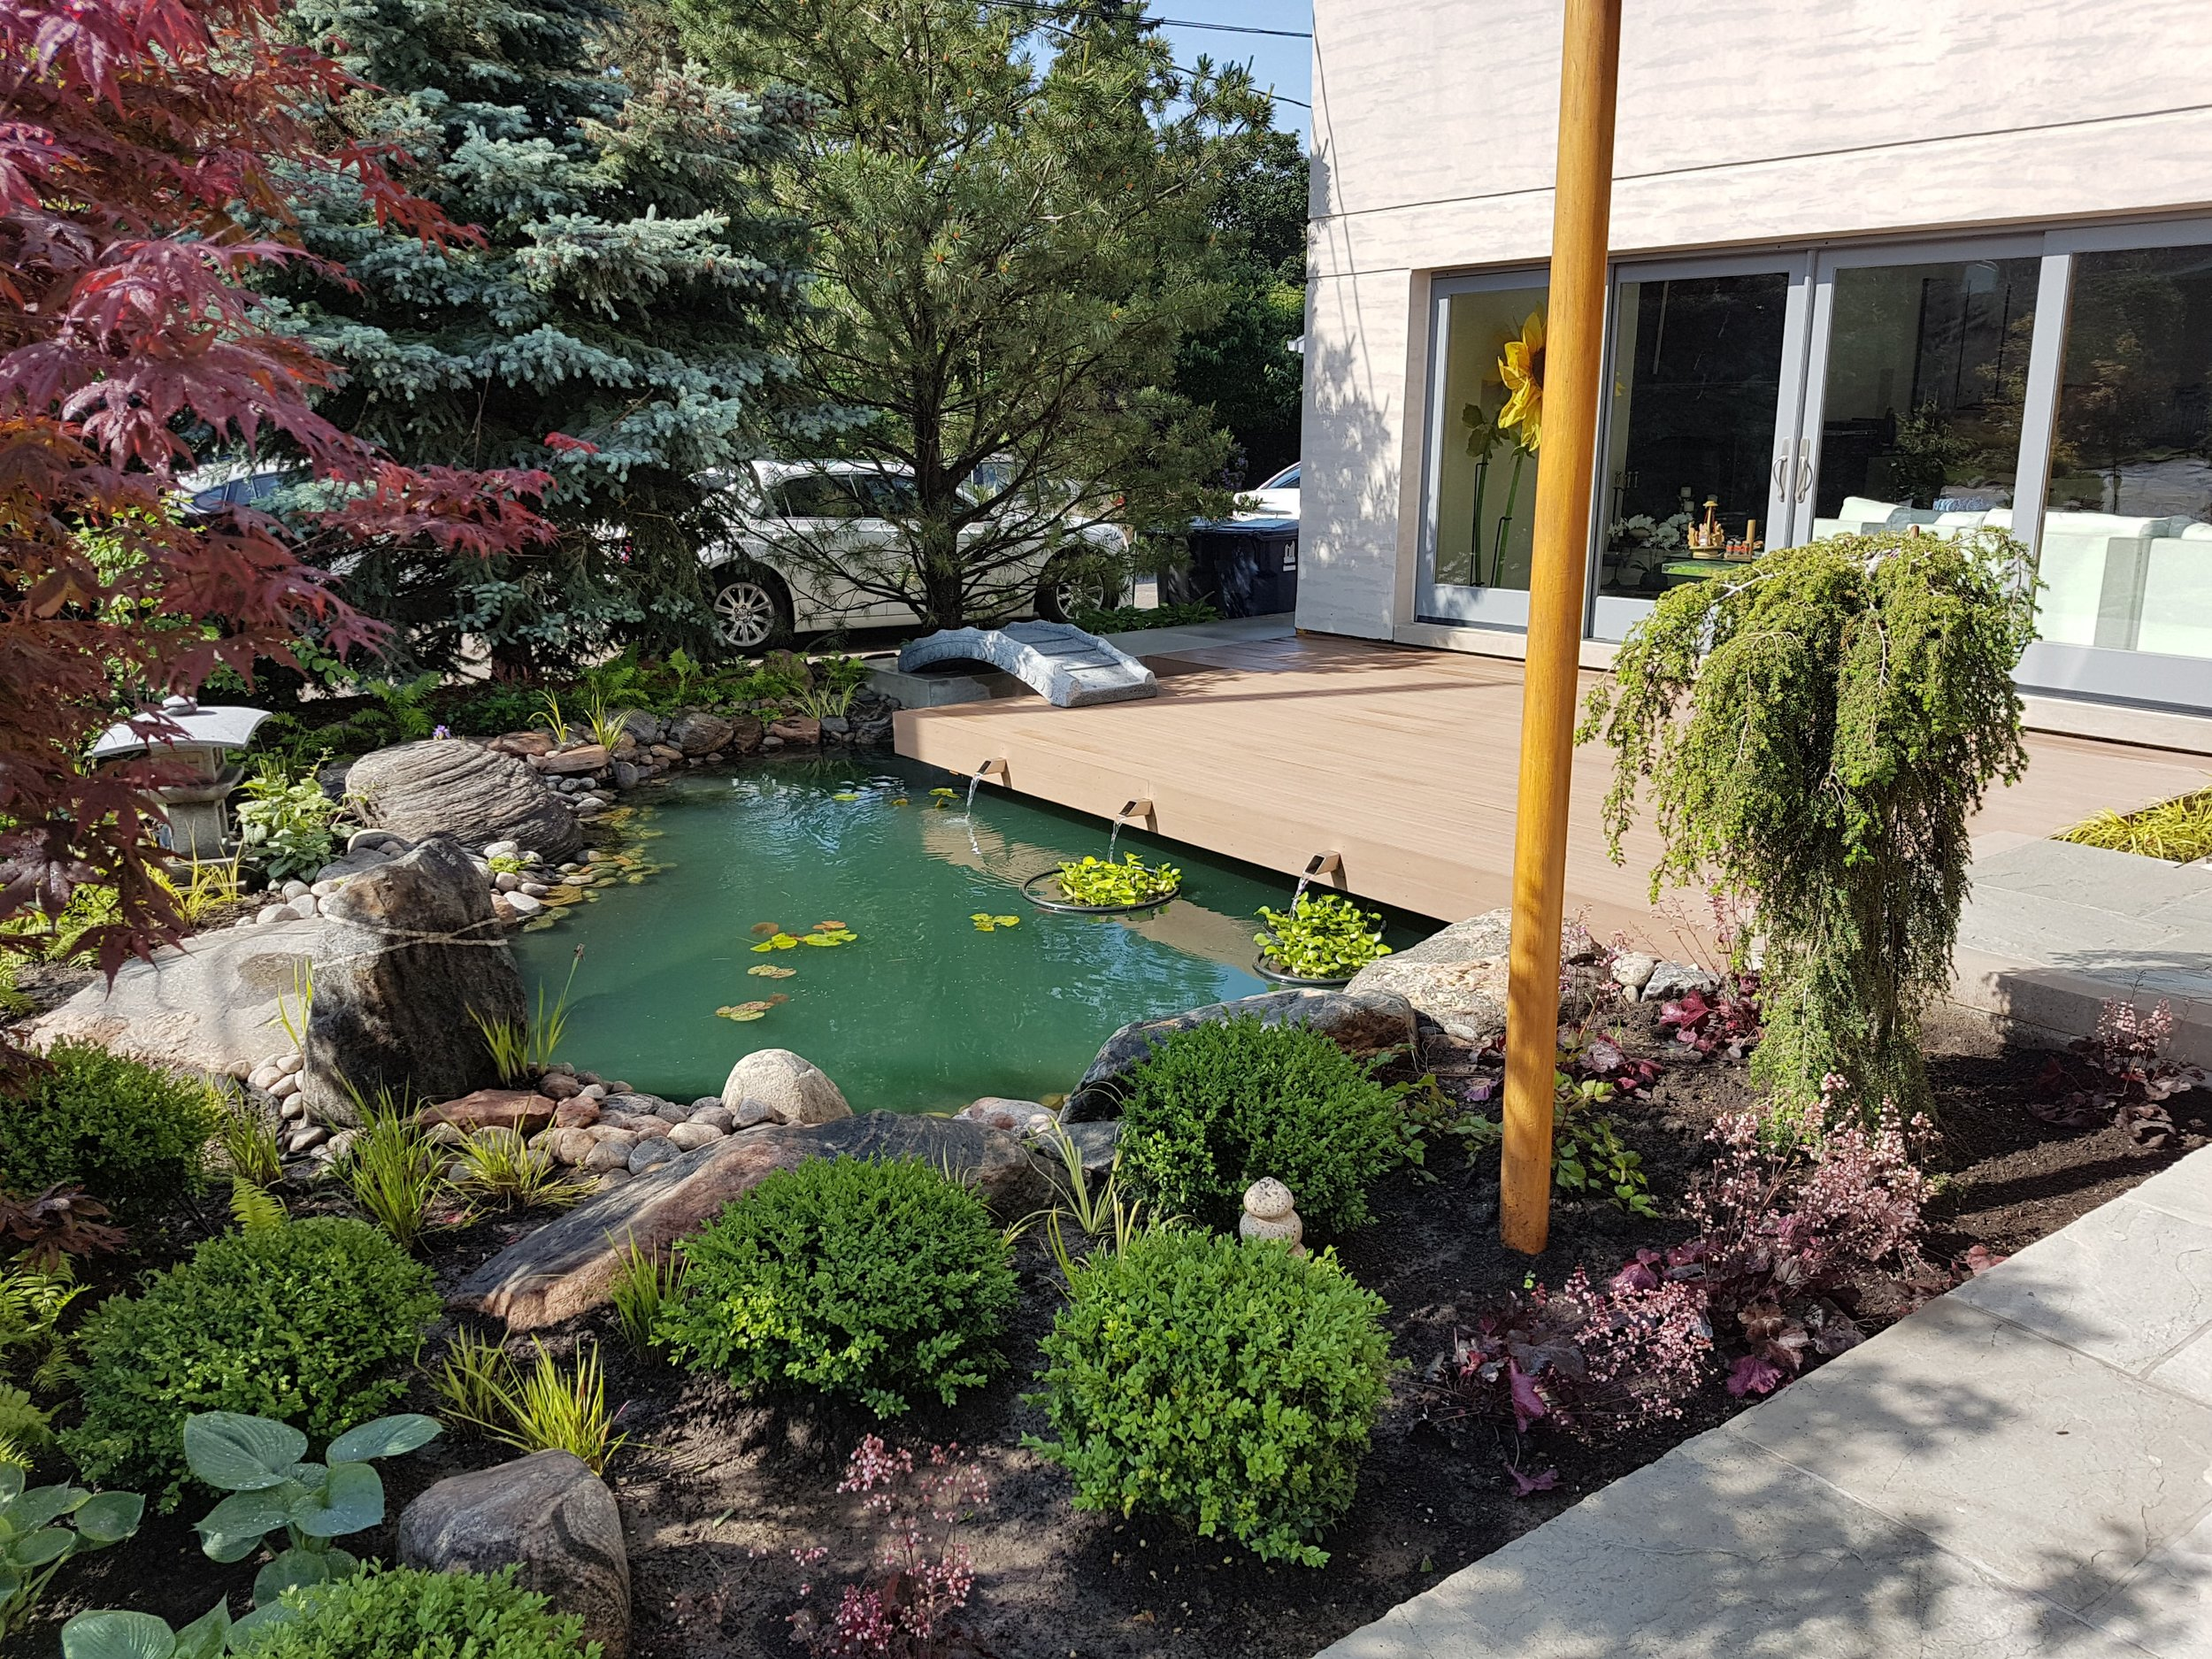 Upon walking futher into the space, you'll find a small and peaceful oasis that is protected from the business of the road. The soothing sounds of trickling water adds to the experience of the space, thanks to the simple water feature detail.